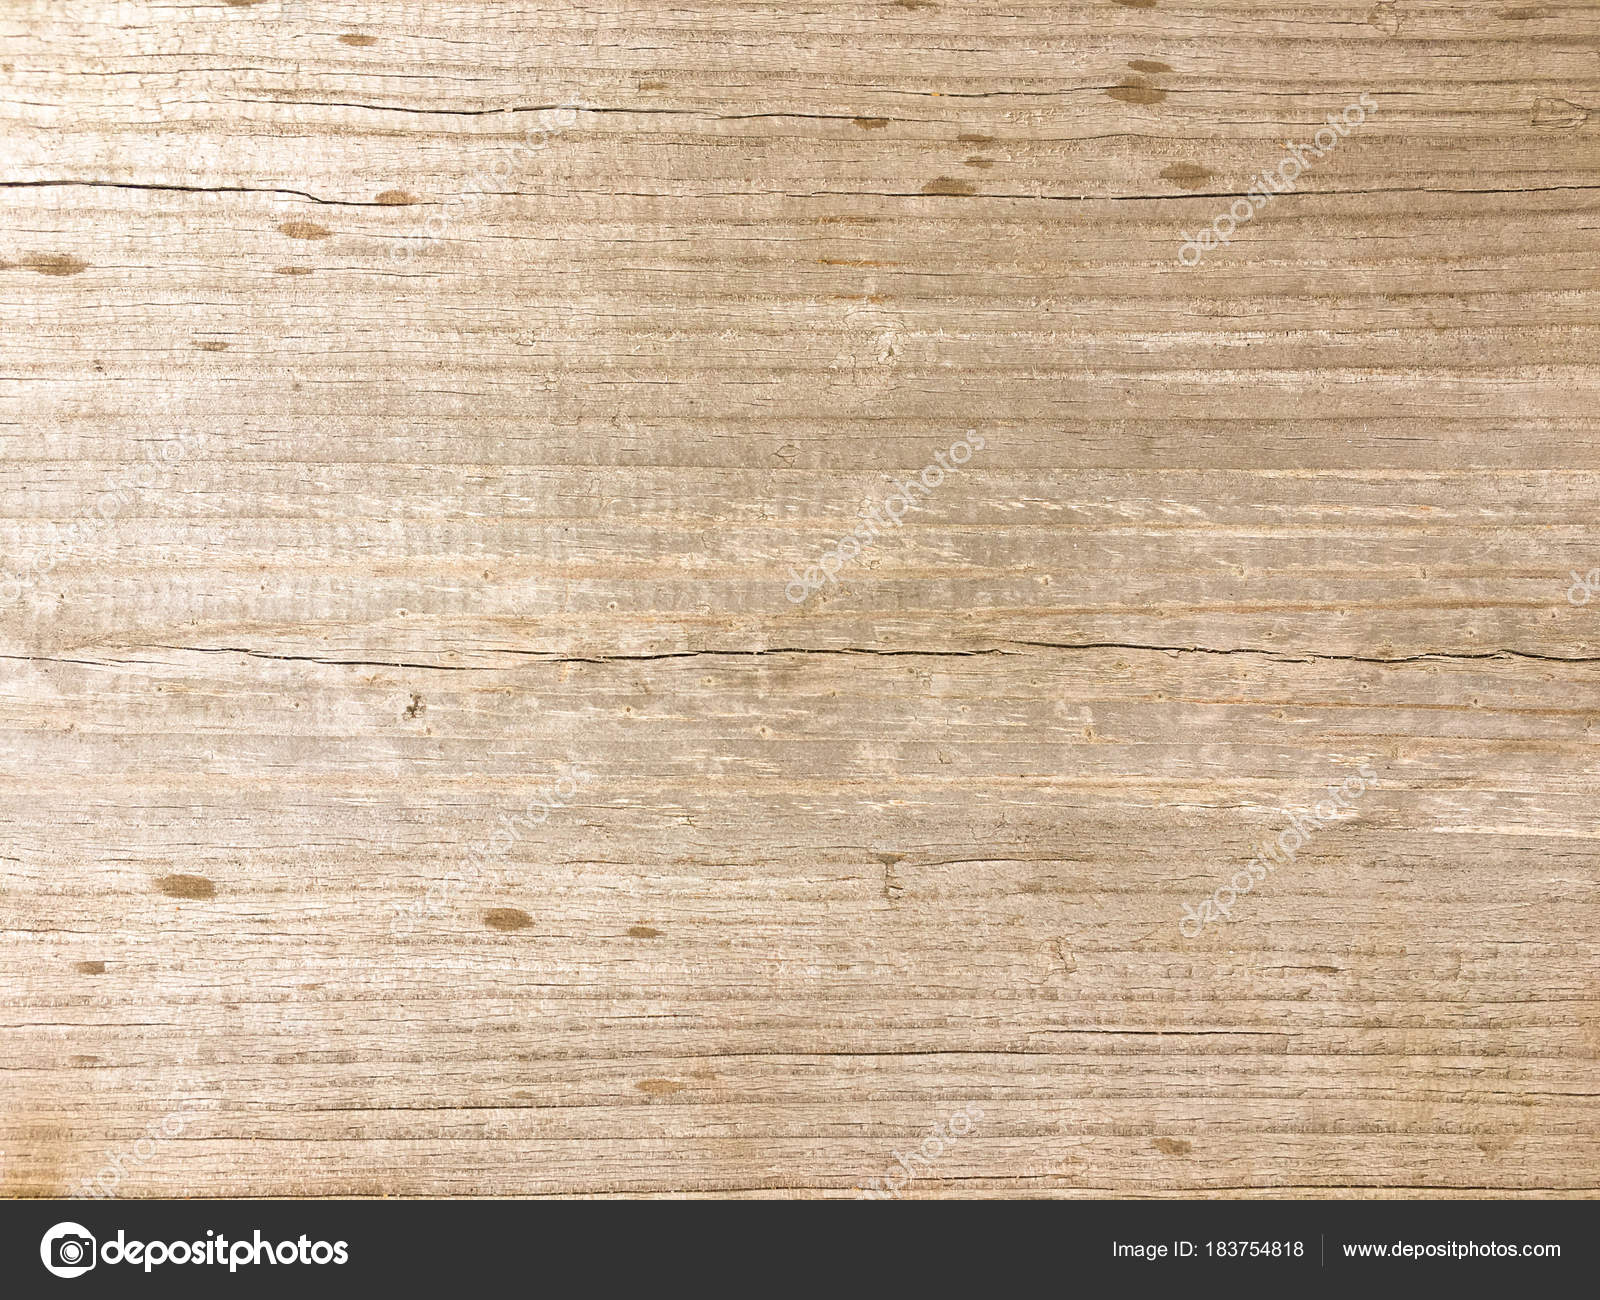 Wood texture background, natural wooden planks. Grunge washed wood ...